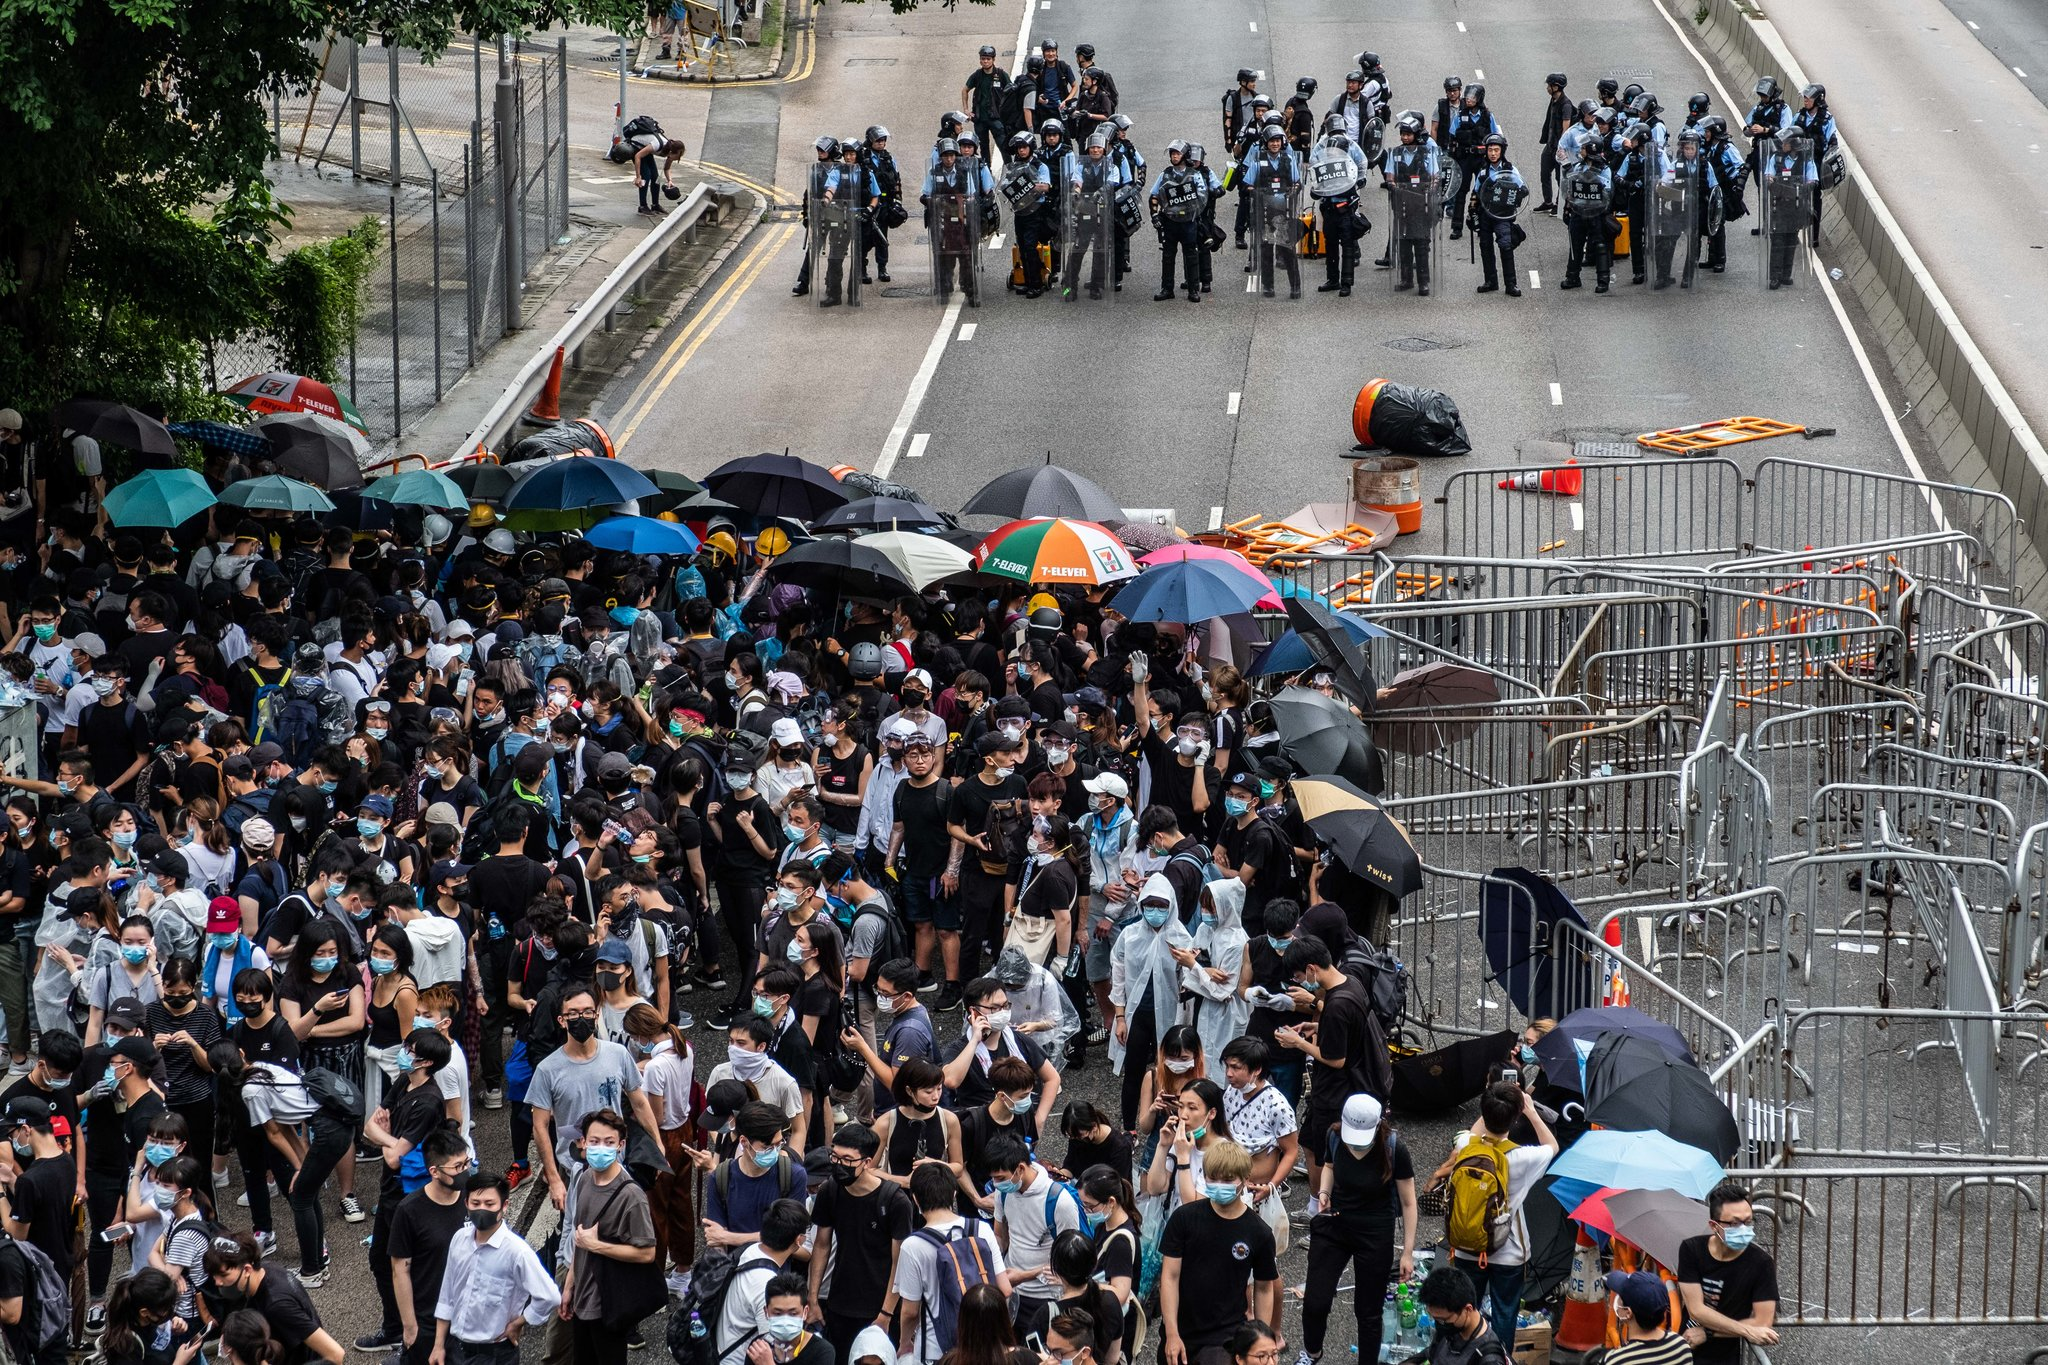 Violence Erupts in HK as LegCo Delays Debate